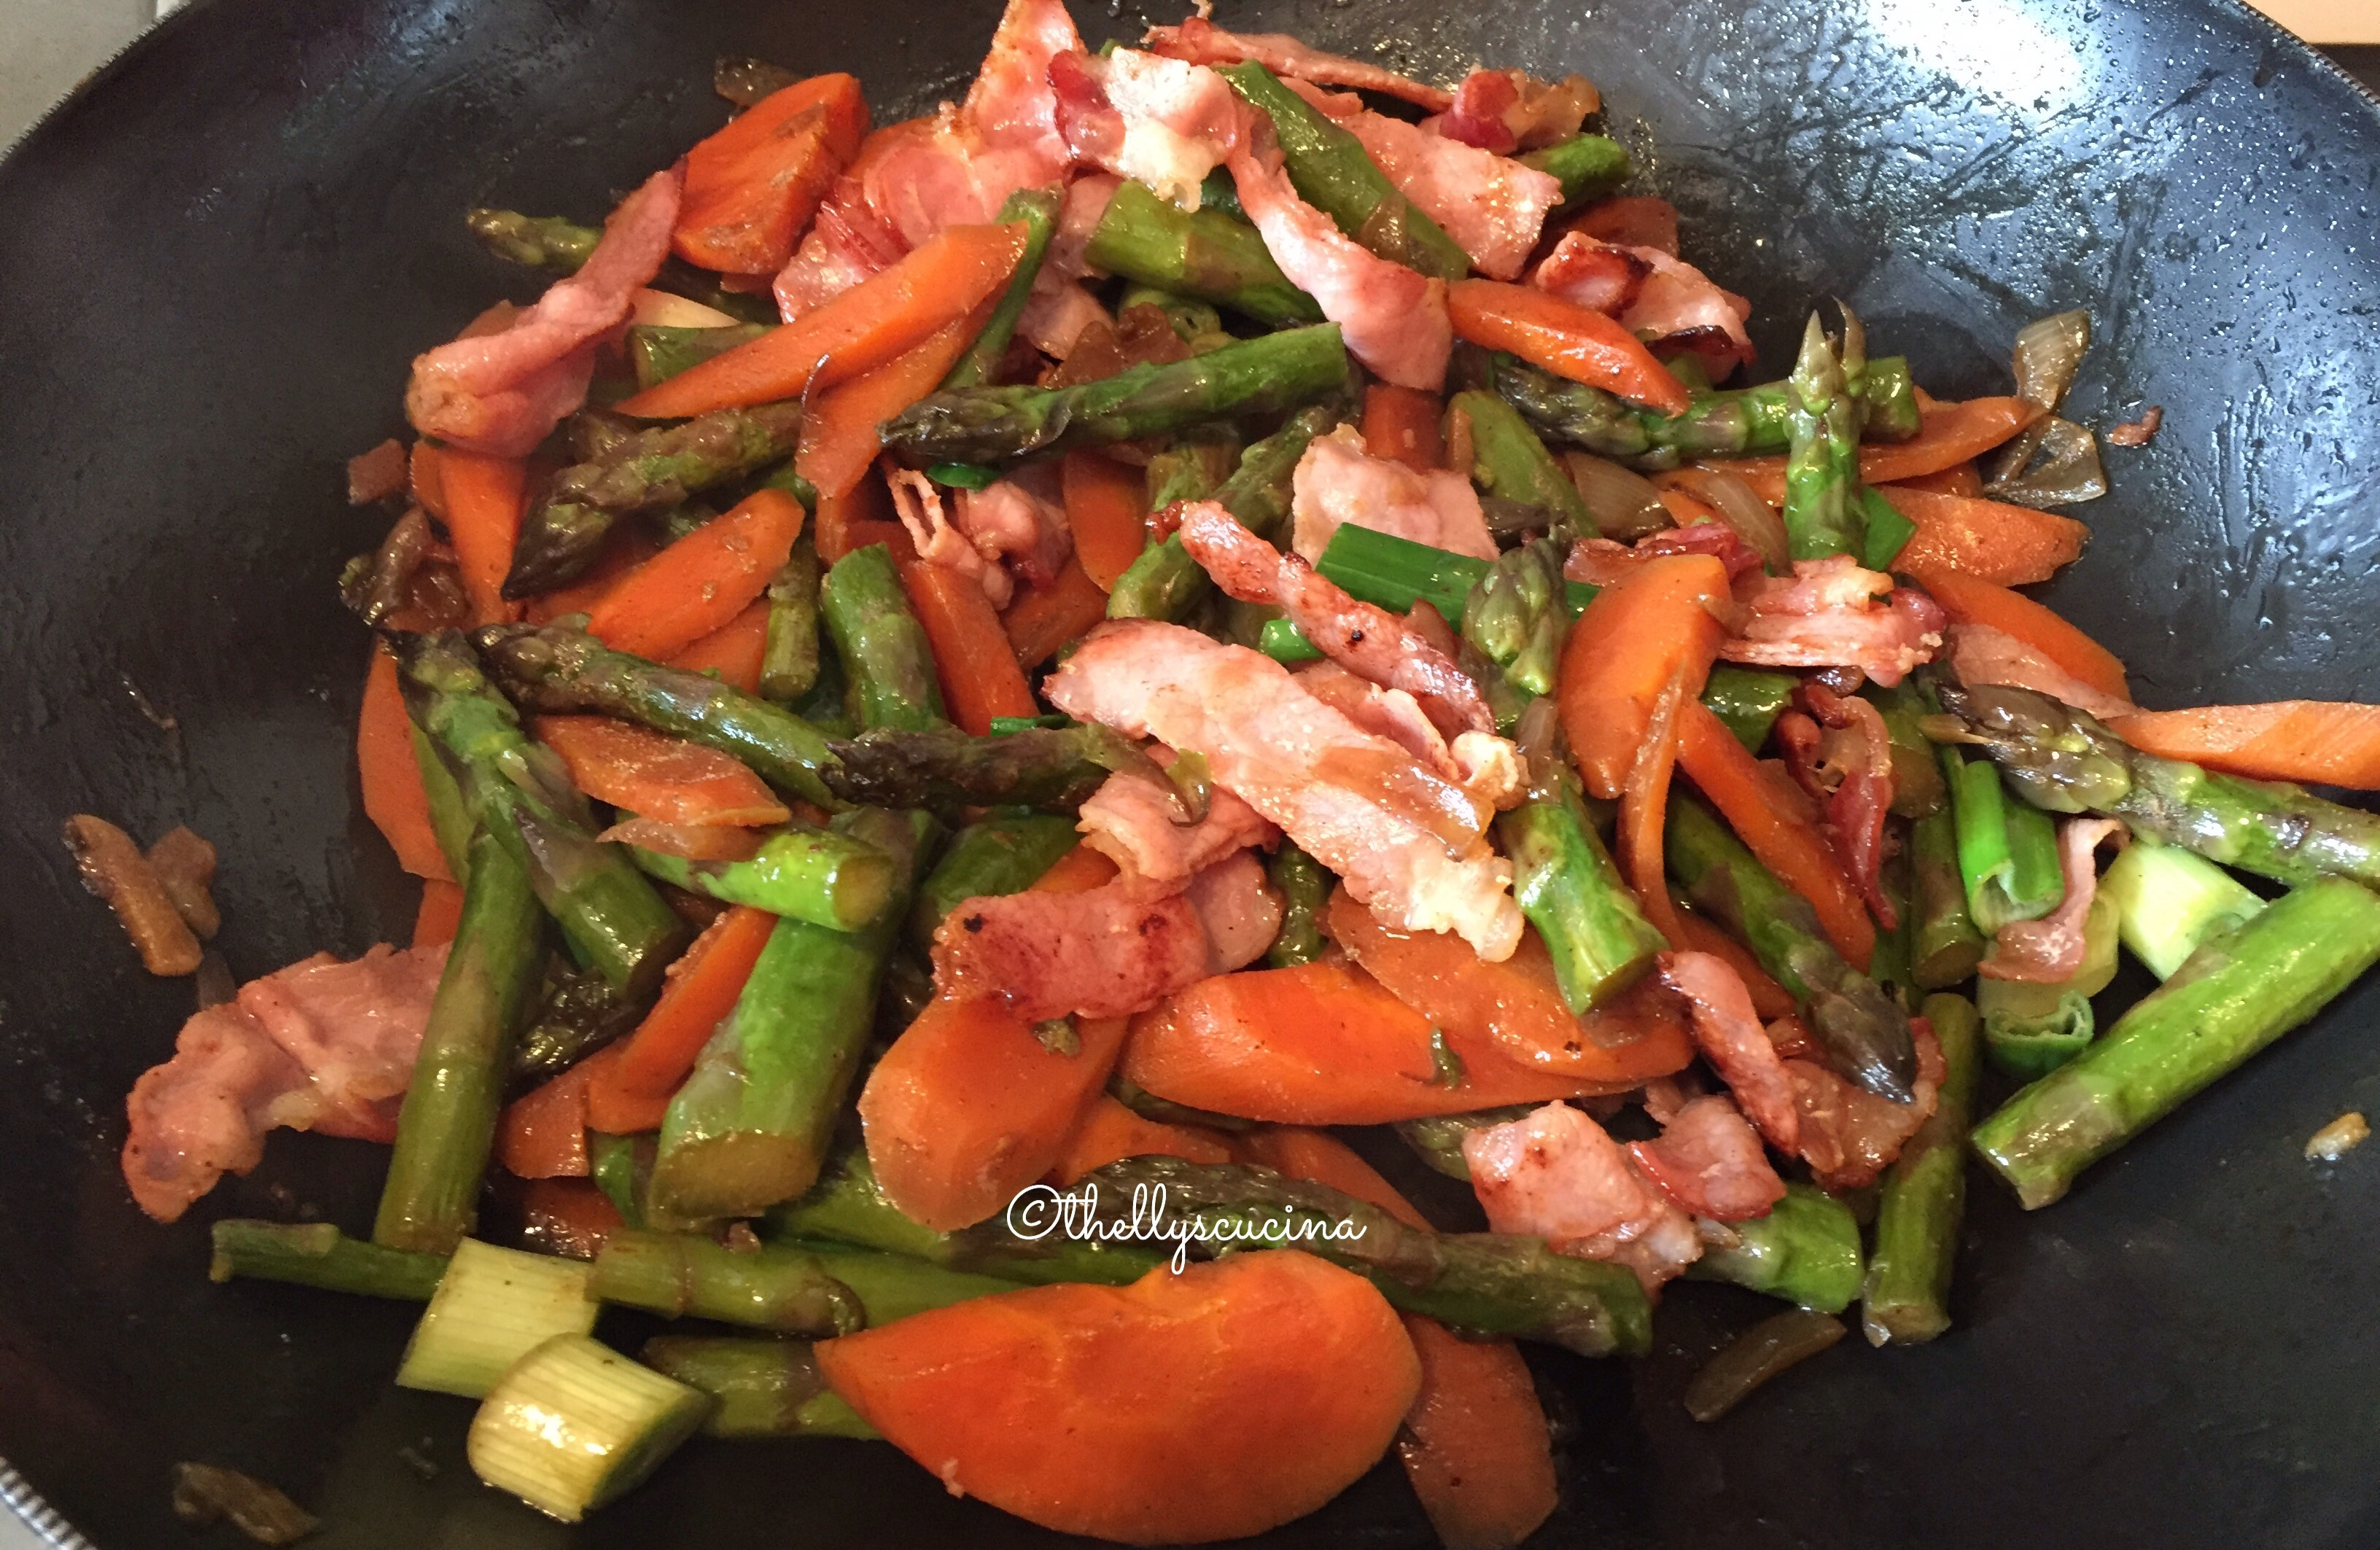 Asparagus with bacon